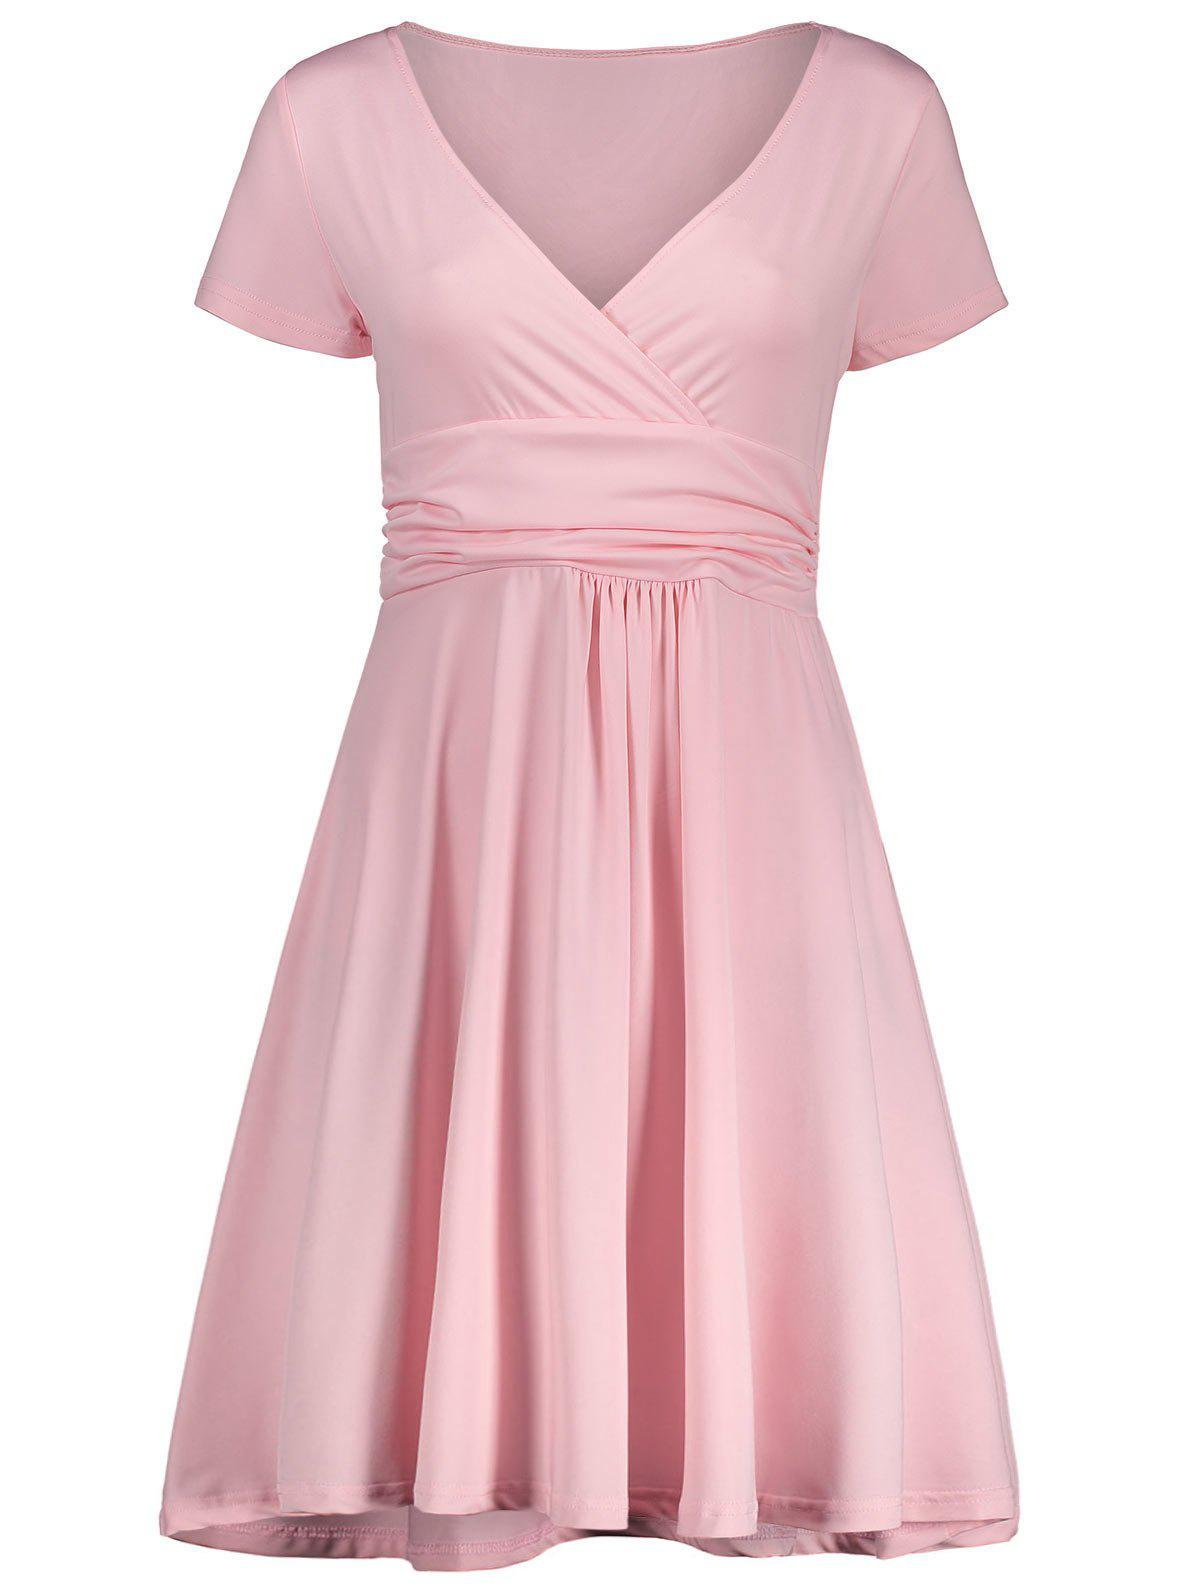 V Neck Work Mini Surplice Dress - PINK M